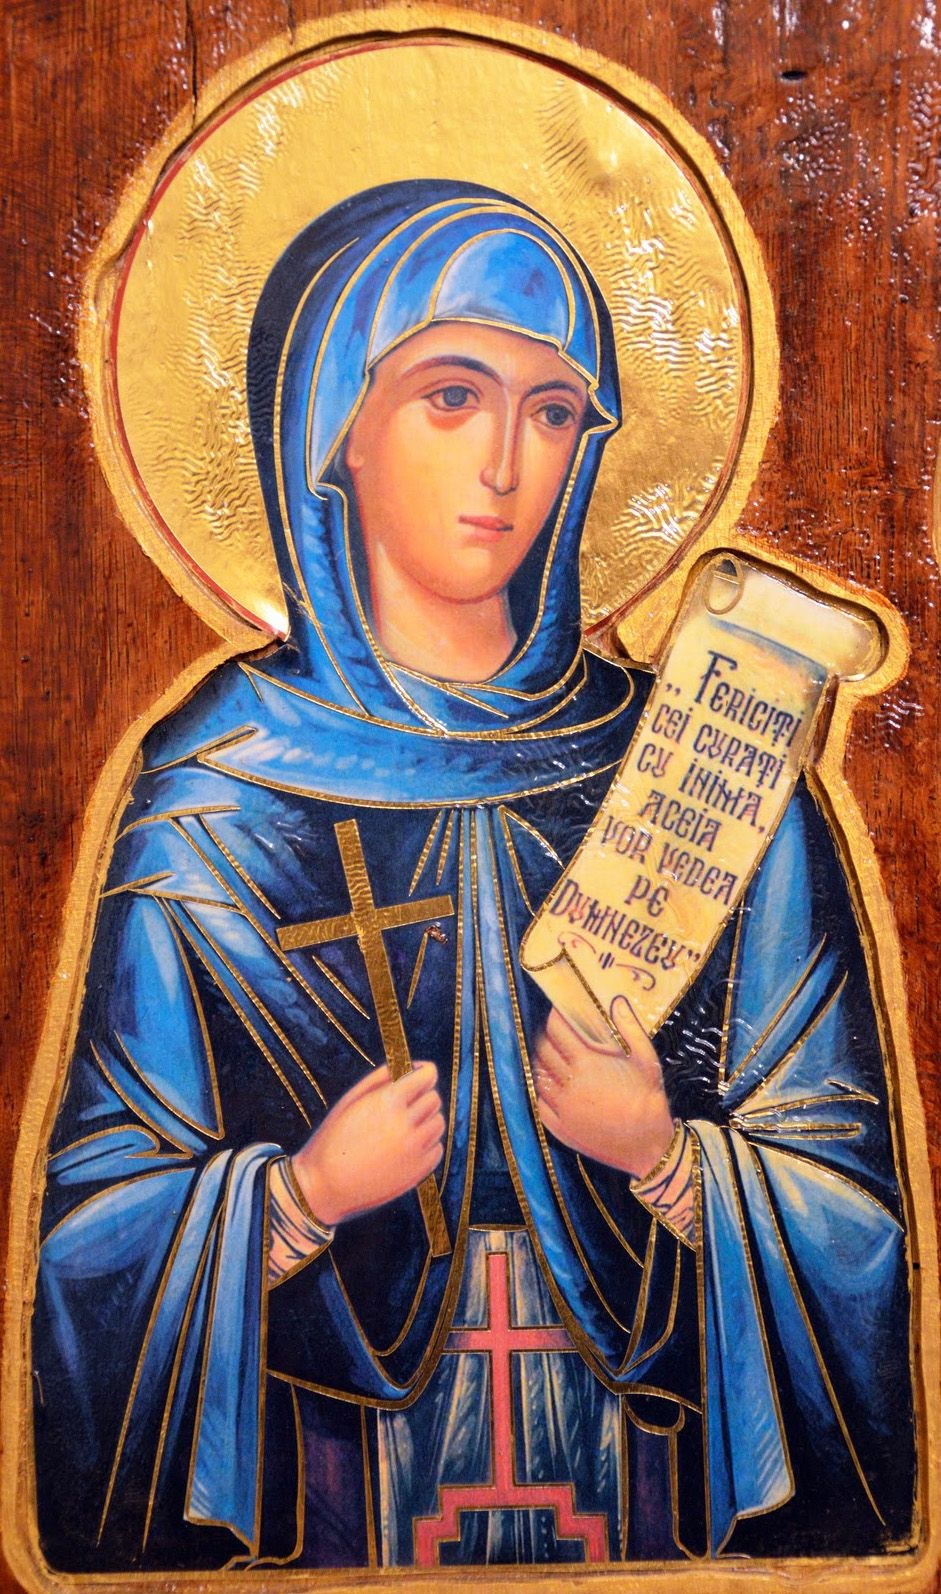 """When Saint Paraskeva the New (11th cent Serbia) heard the Lord's teaching, """"If any man will come after Me, let him deny himself,"""" she gave all her clothes to the poor. She became a nun at 15 and lived in a desert for 10 years, until an angel told her to return home. She died at age 27. Many miracles occurred near her grave, and her relics were uncovered incorrupt. Since the 17th century they reside in the Three Hierarchs Cathedral in Iasi, Romania."""